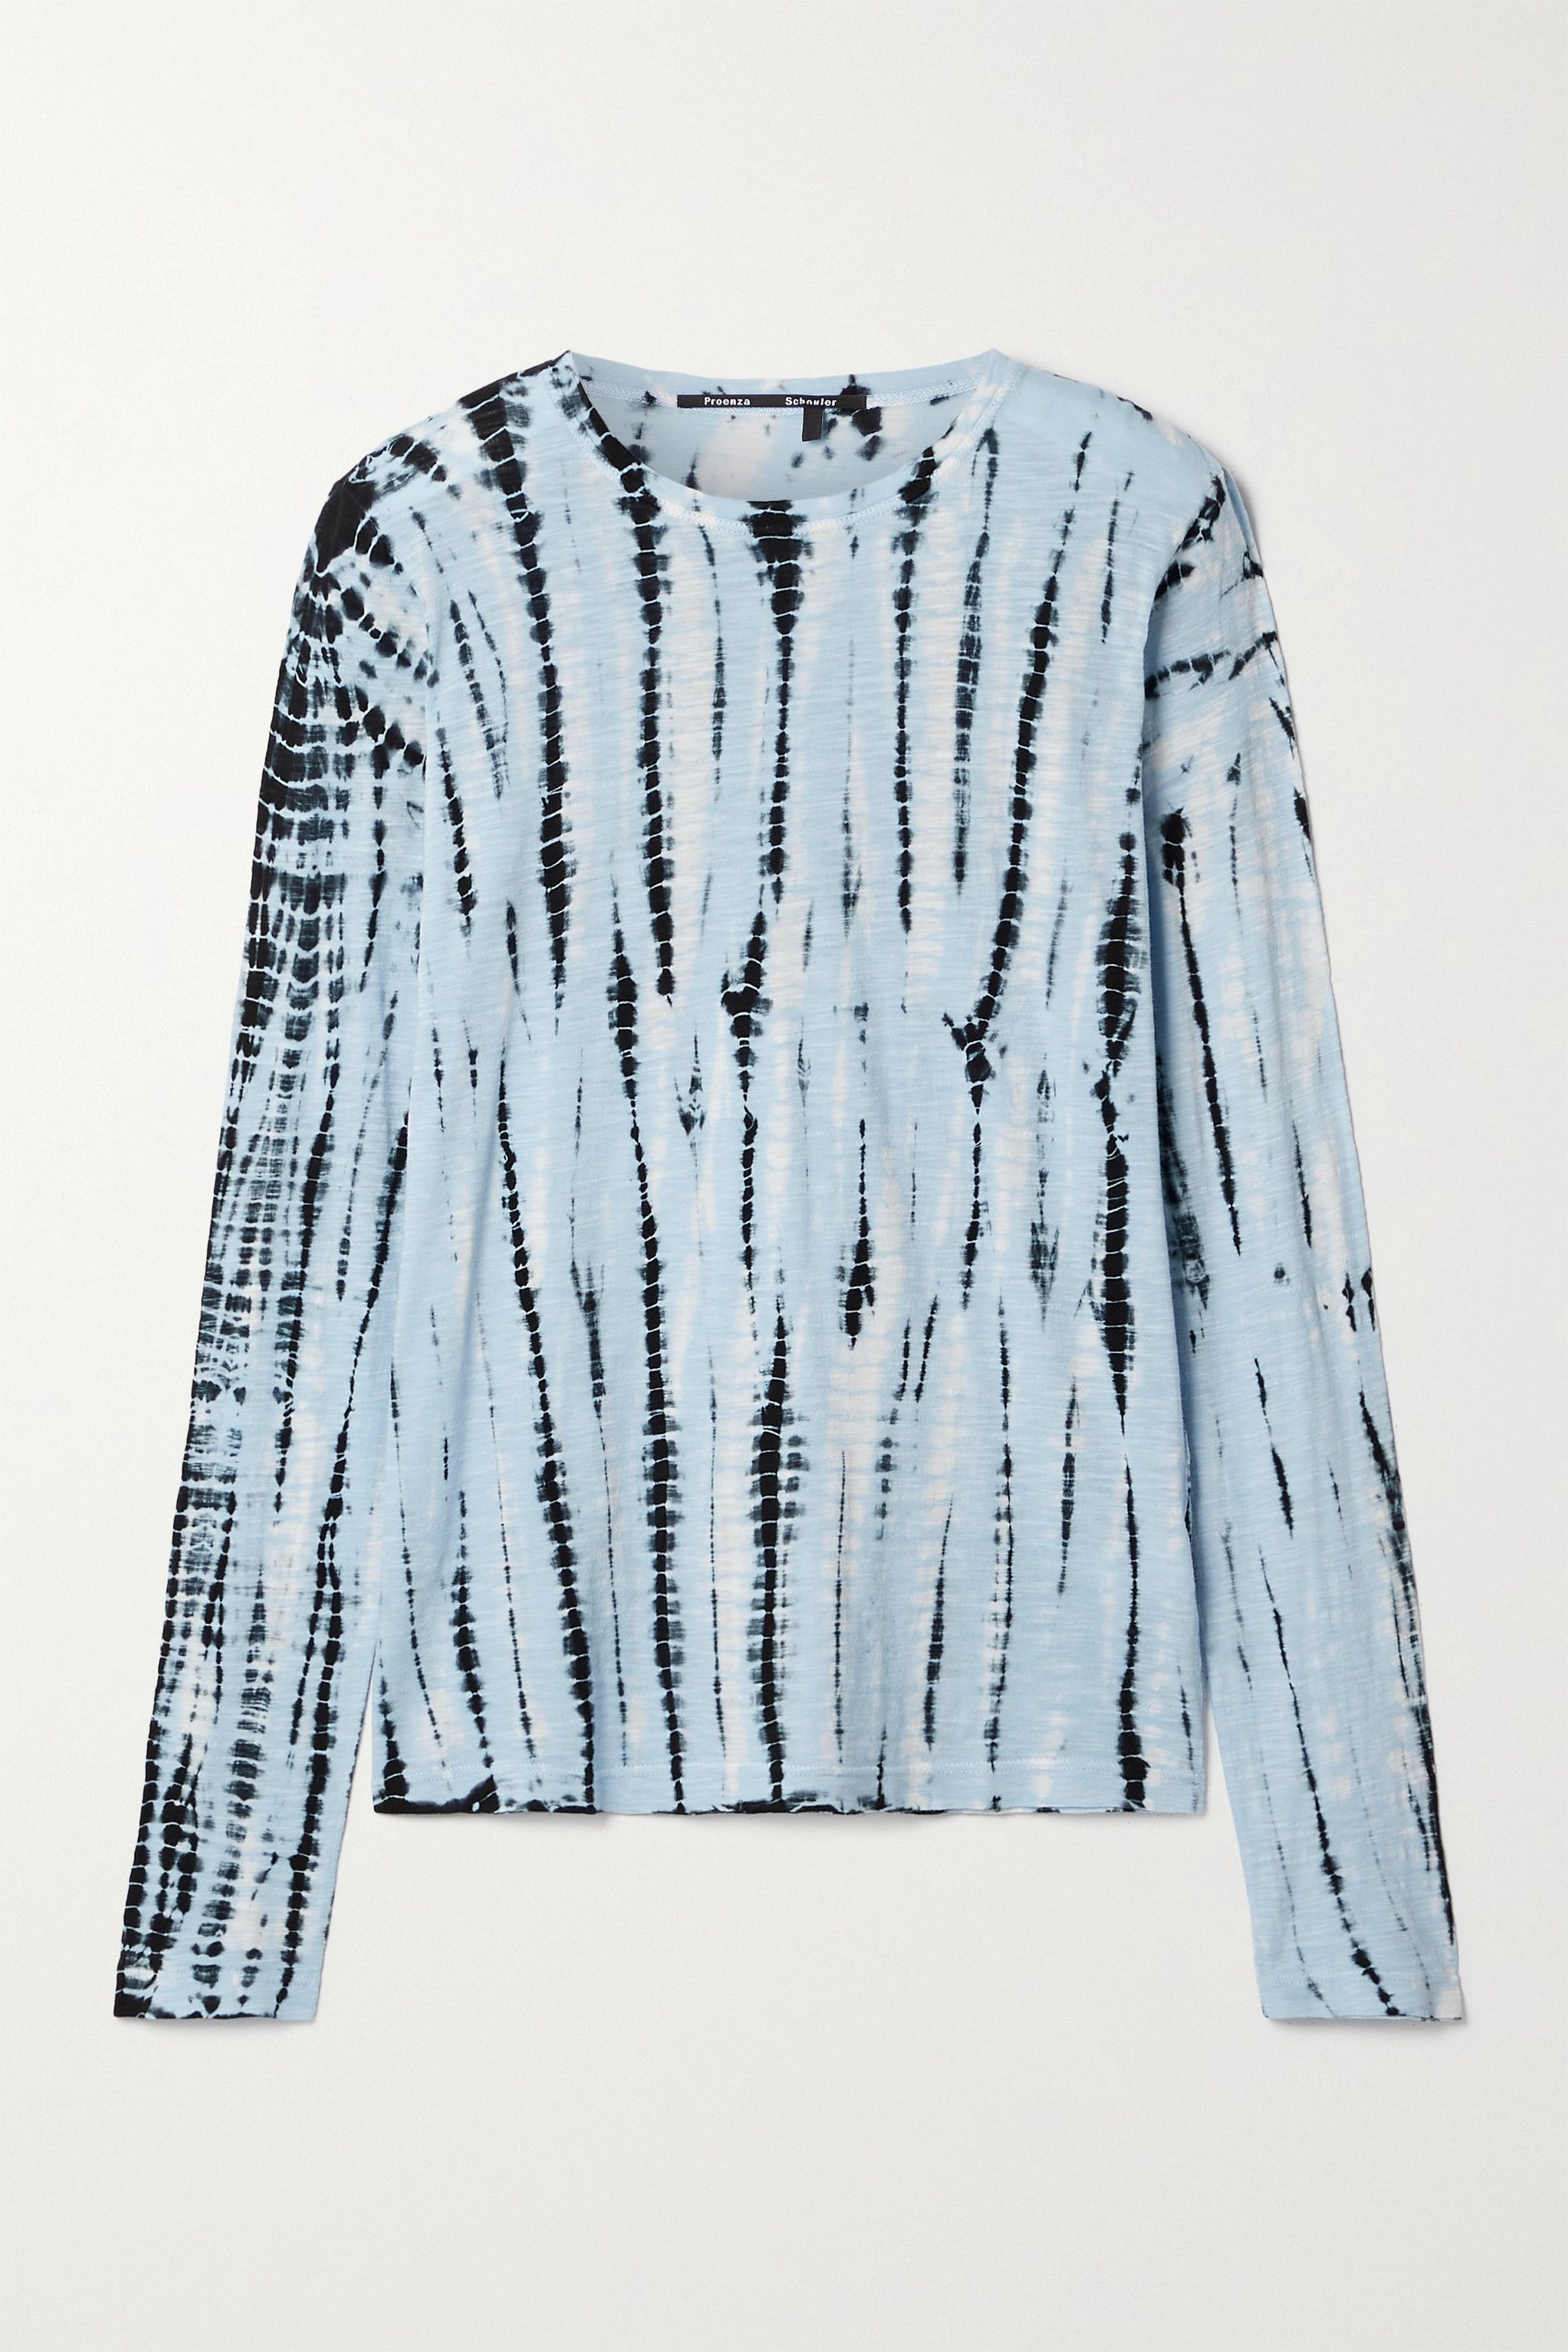 I Hand-Picked the Best Designer Buys From This Year's Summer Sales